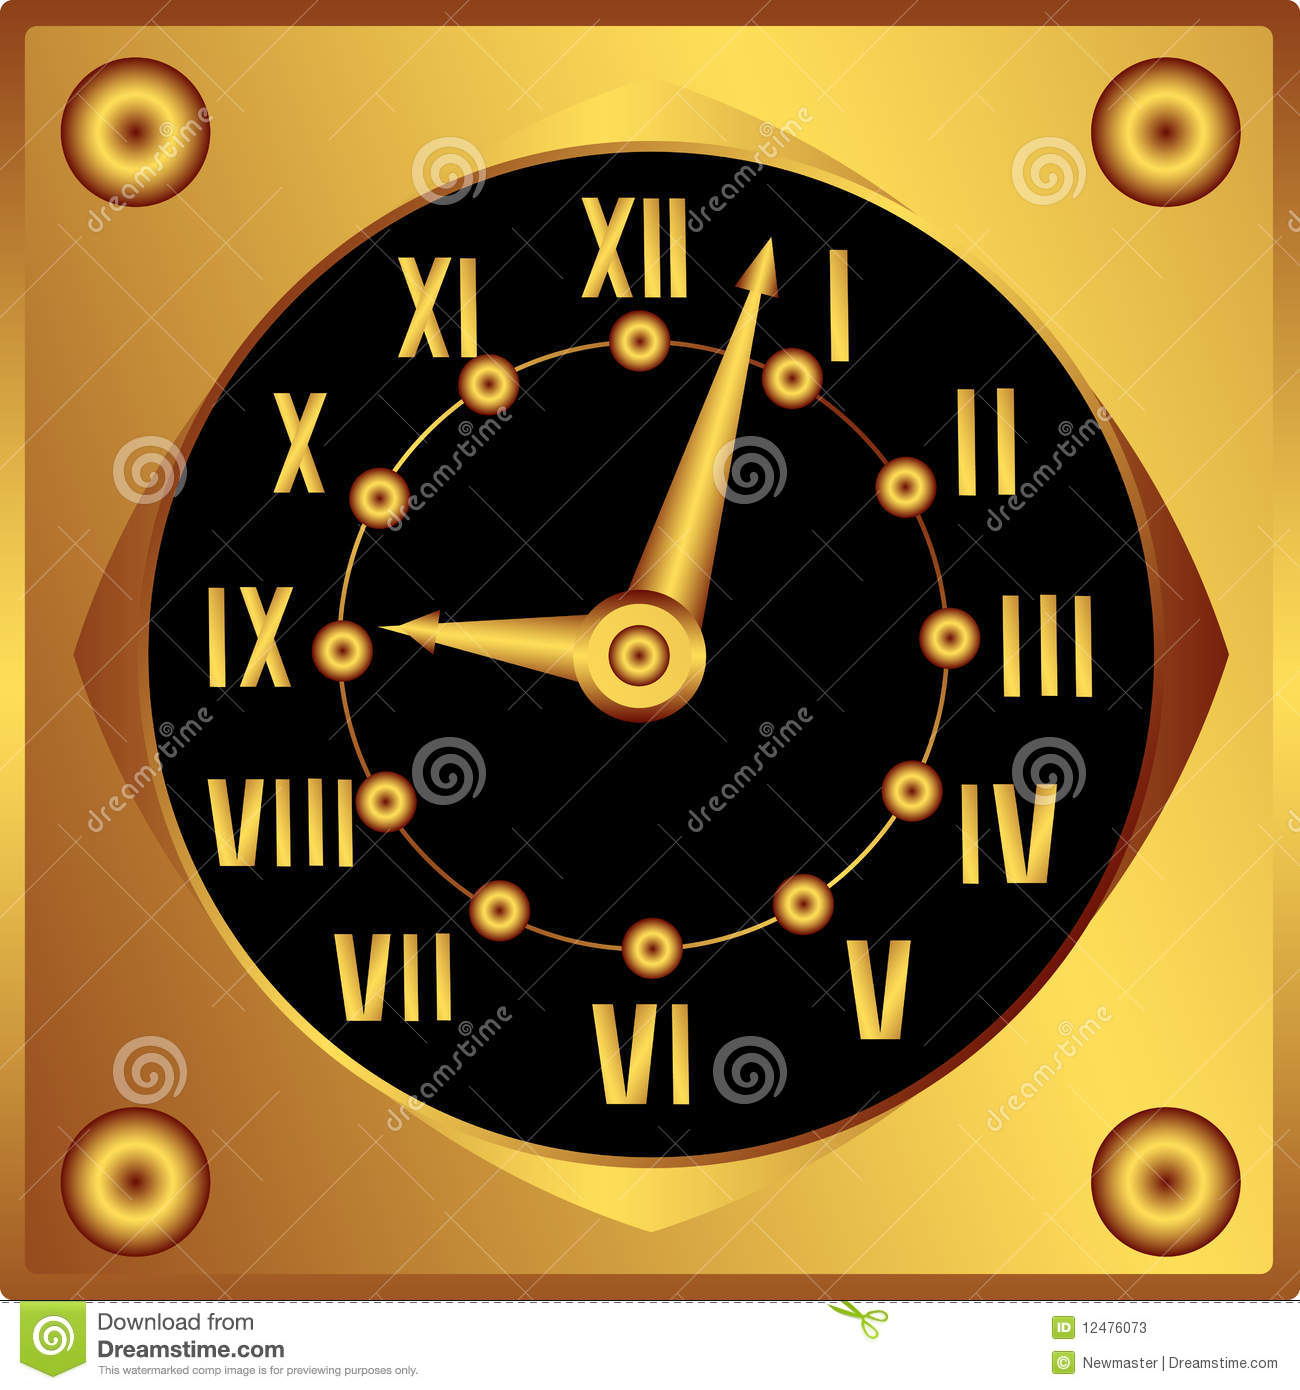 Horloge d corative photos stock image 12476073 - Horloge decorative ...